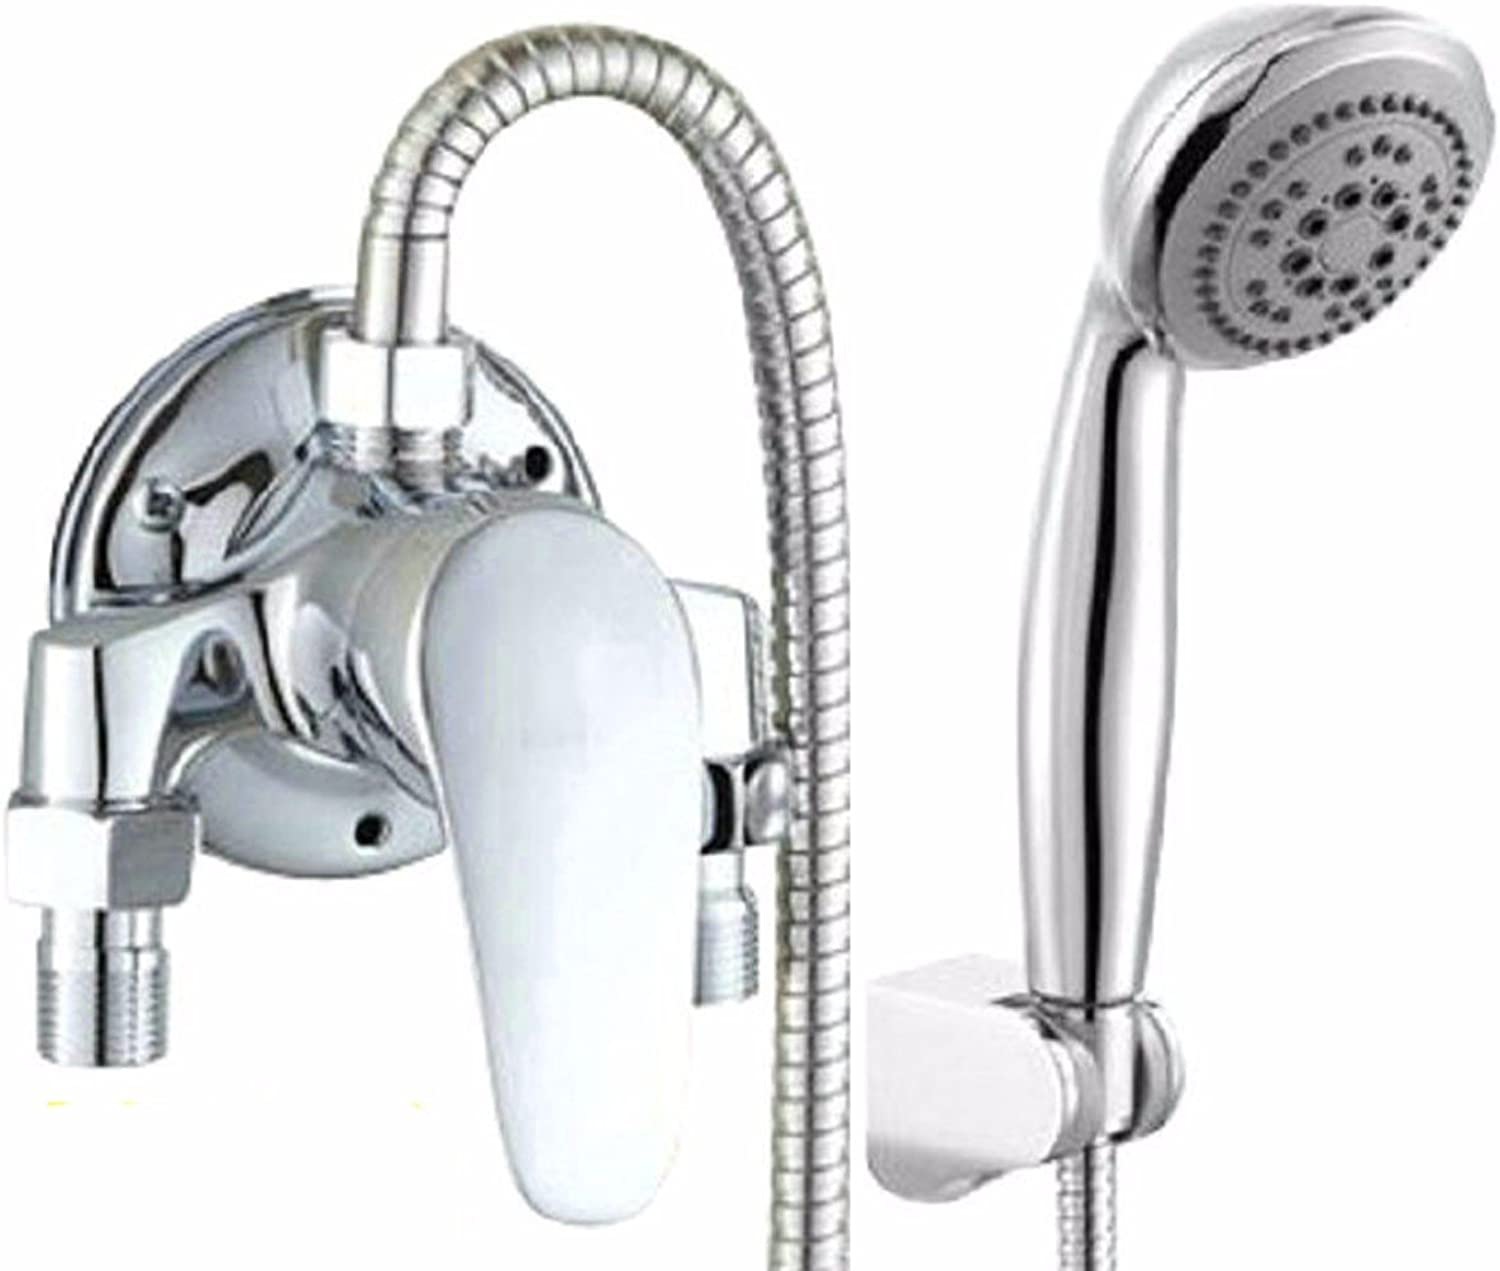 KaO0YaN-Tap Full Copper Shower Set, Open Tube hot and Cold Faucet Shower, Switch Water Heater Mixing Valve?, F